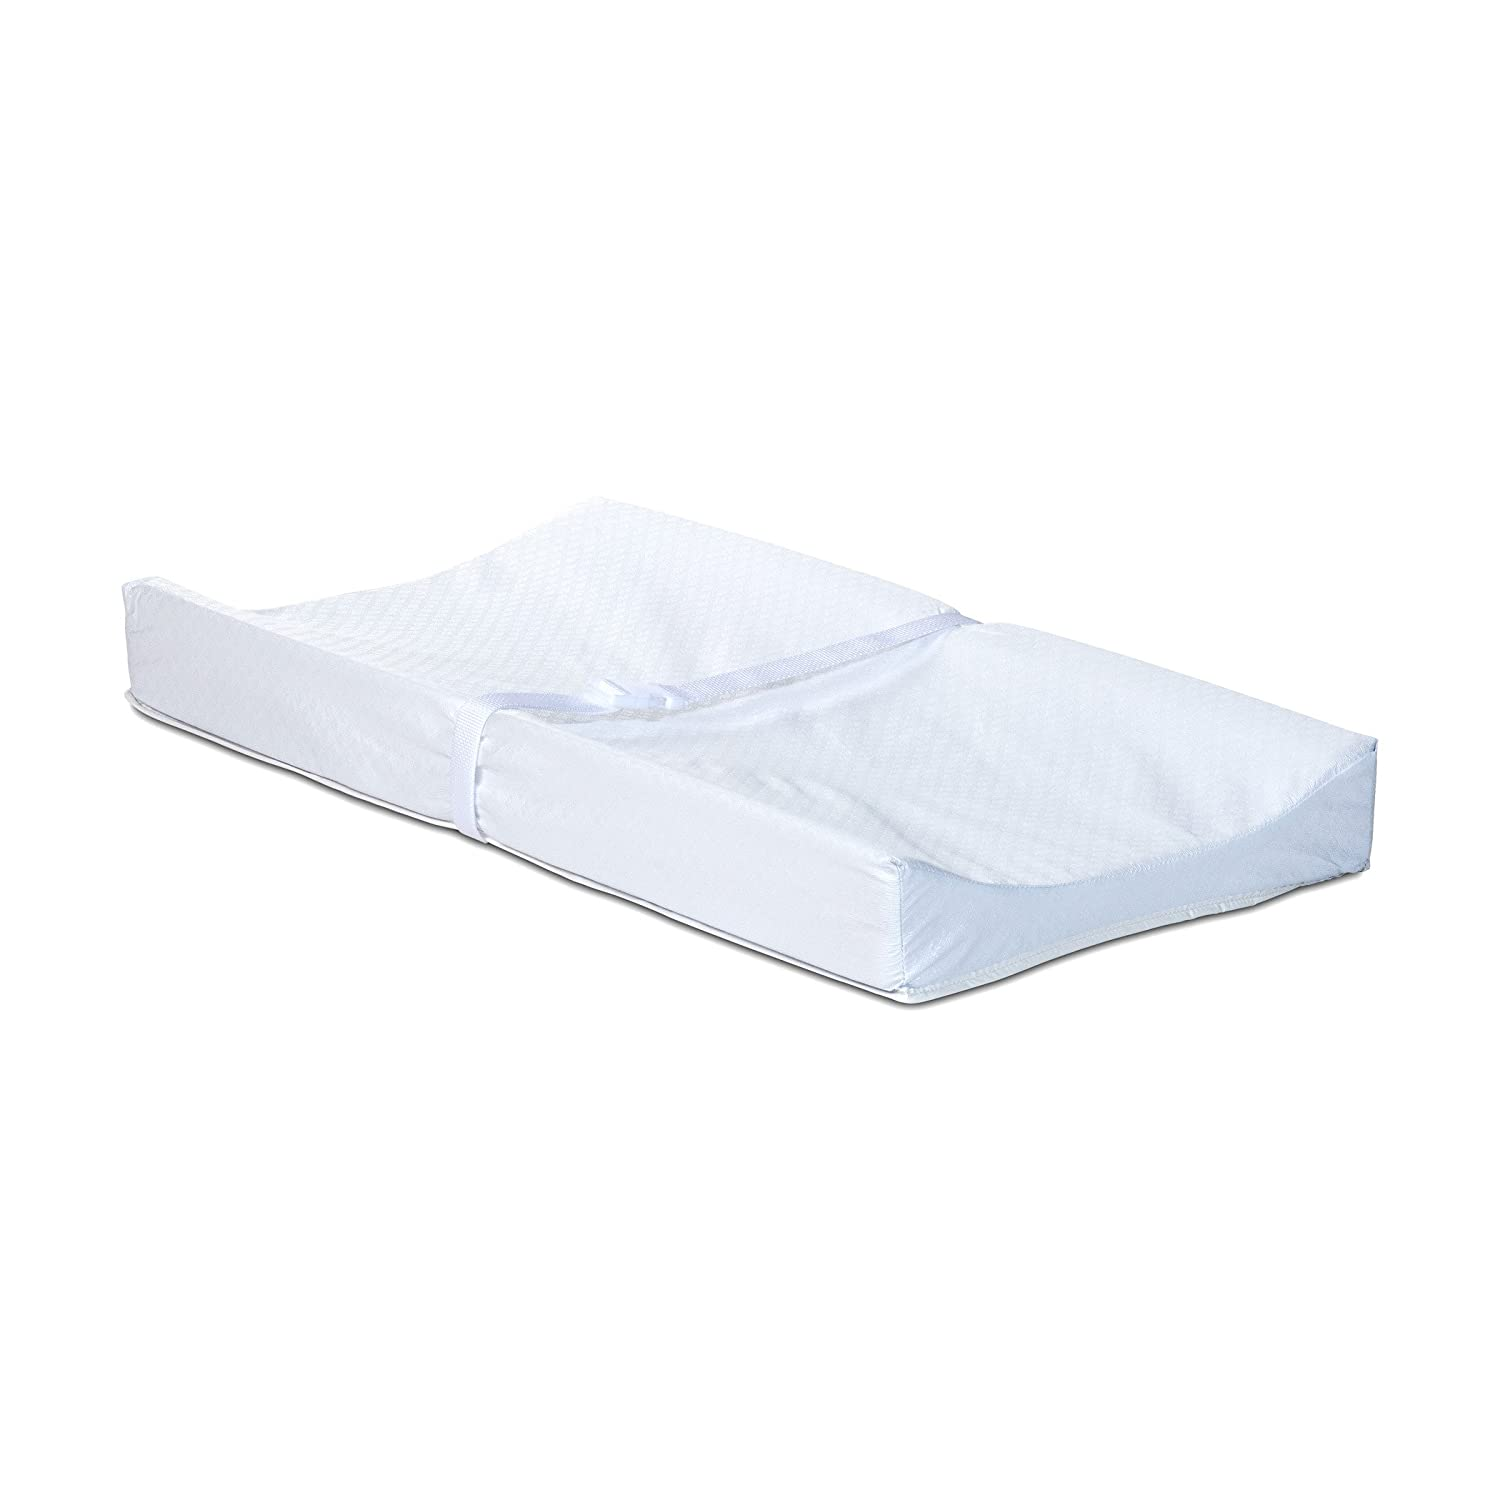 Child Craft Contour Changing Pad, White Foundations F04014.44